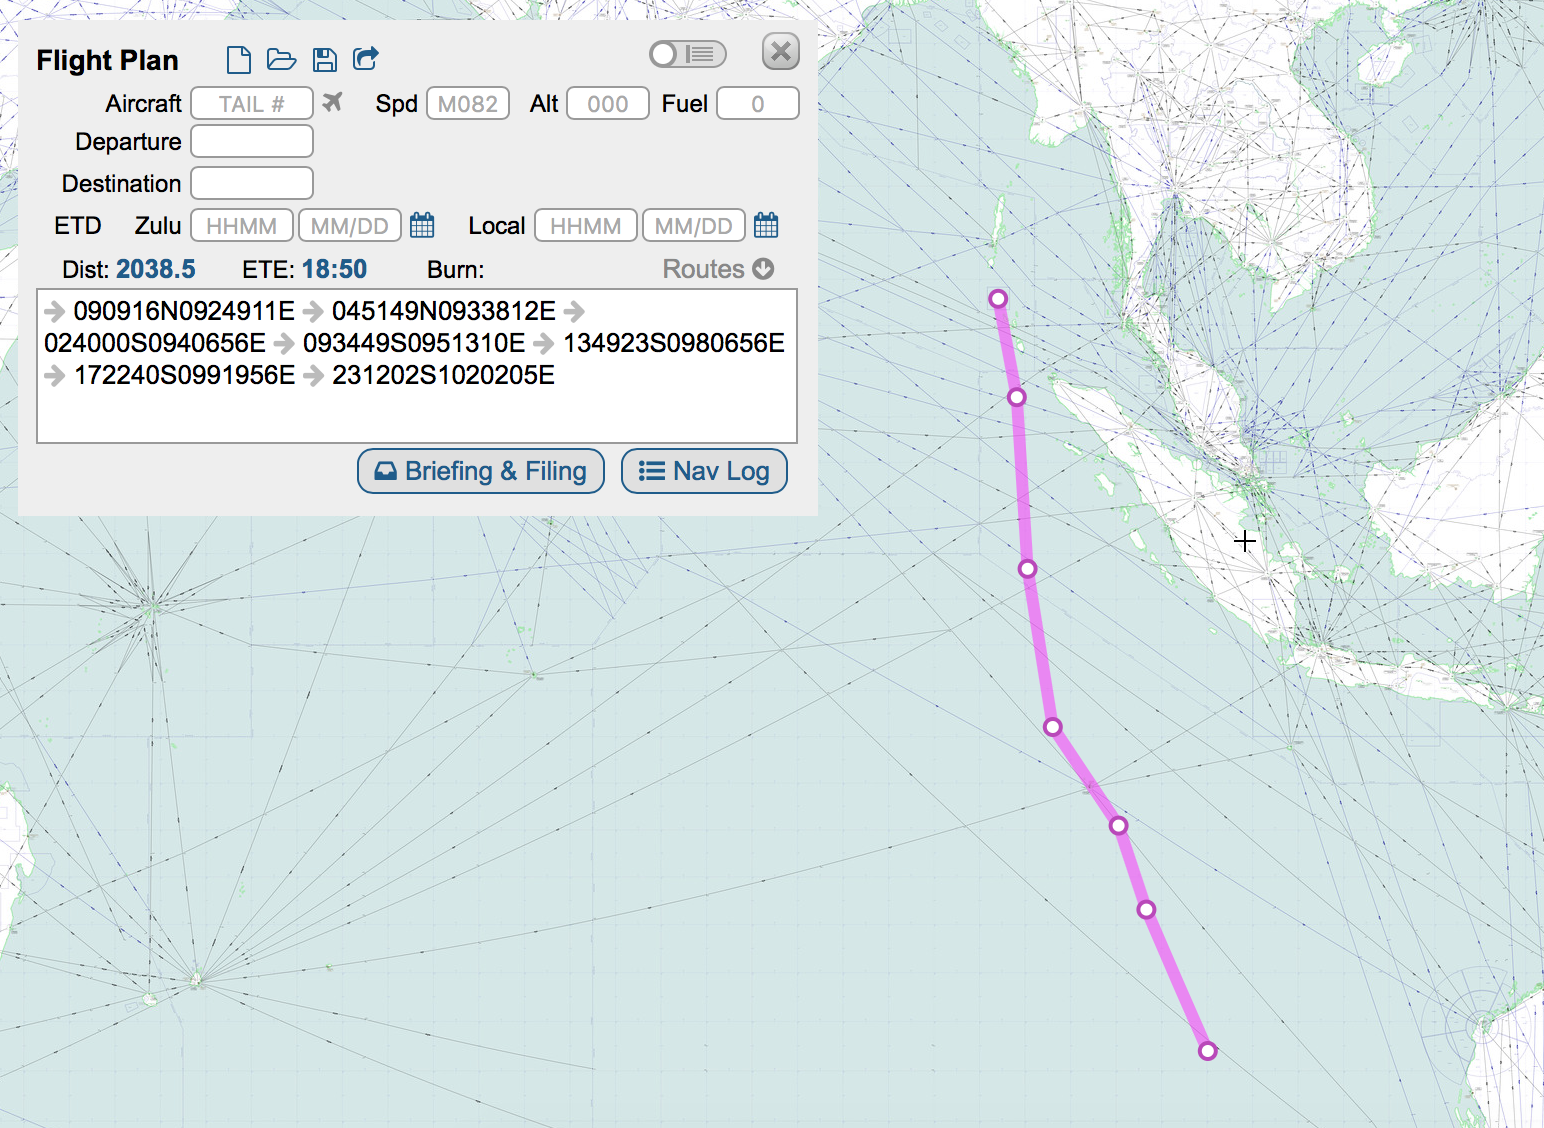 mh370-flight-path-model-fmc-vocx